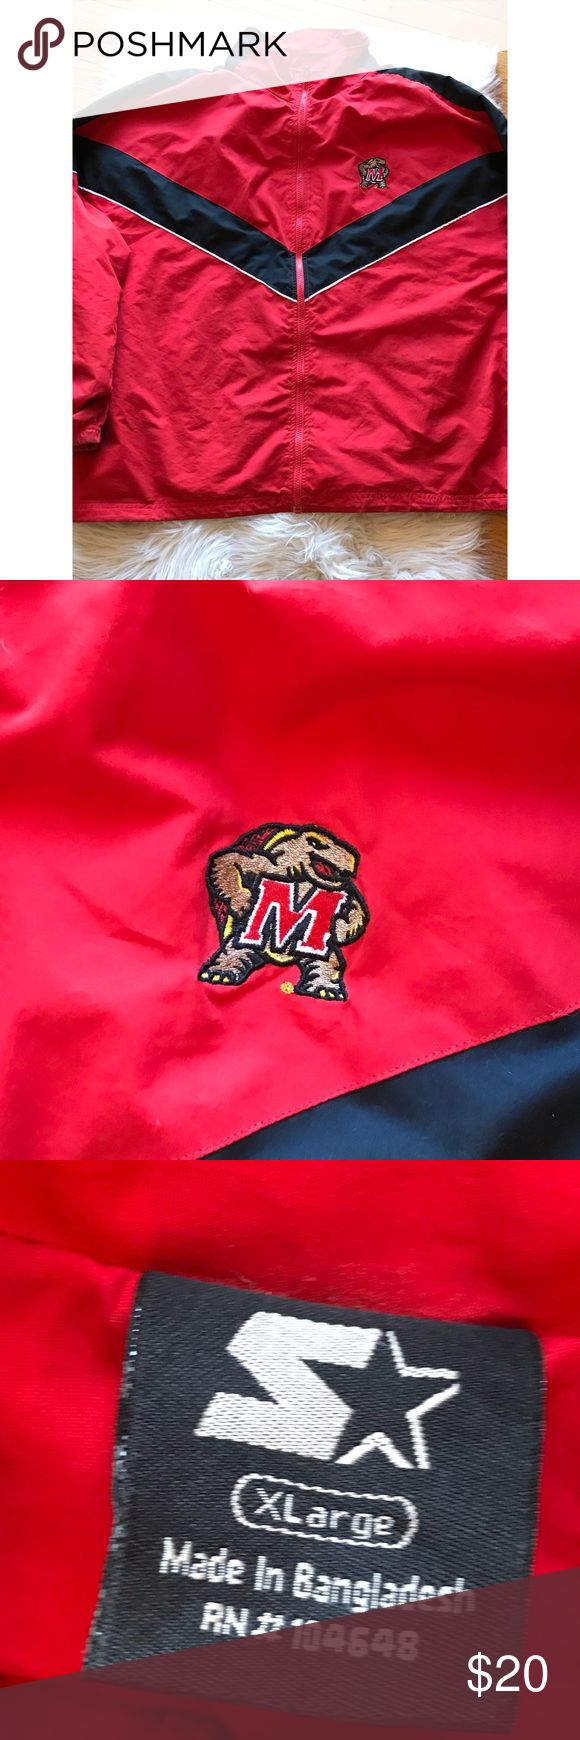 Maryland University STARTER Windbreaker Men's XL Maryland University STARTER Windbreaker Men's XLarge. Minor flaws , see pictures for details. Small hole in the back STARTER Jackets & Coats Windbreakers